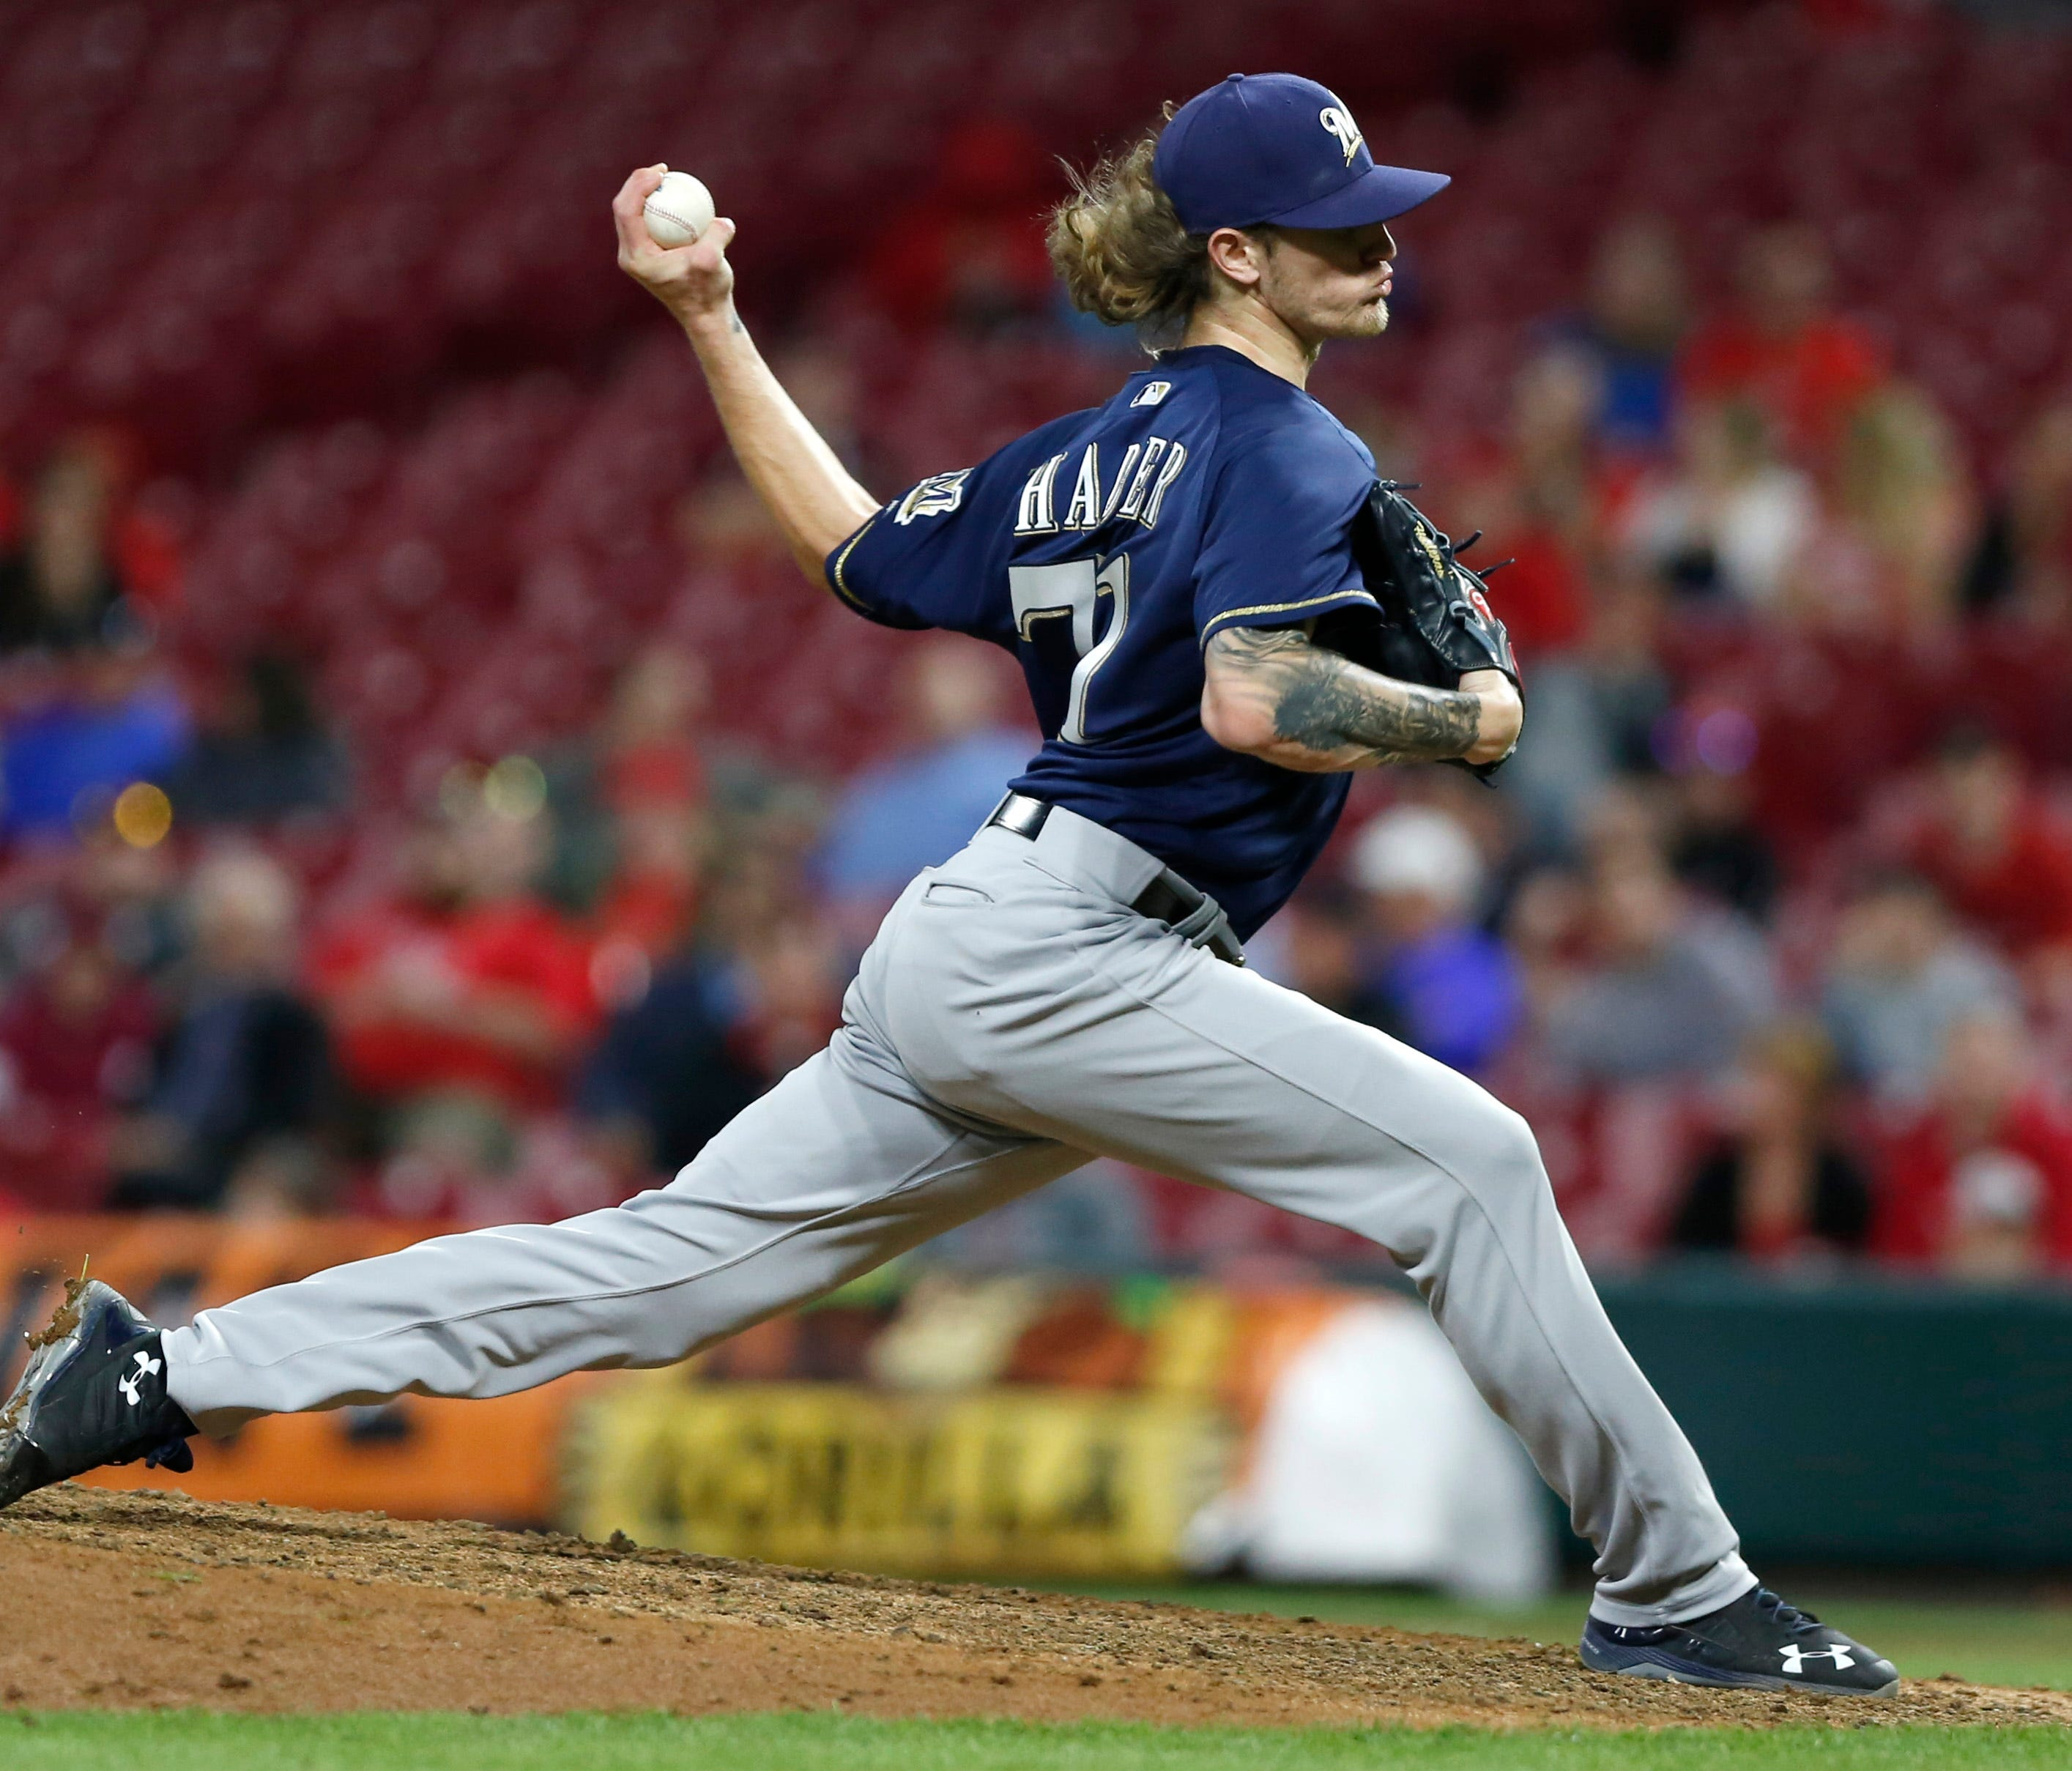 Josh Hader strikes out 8 in save.